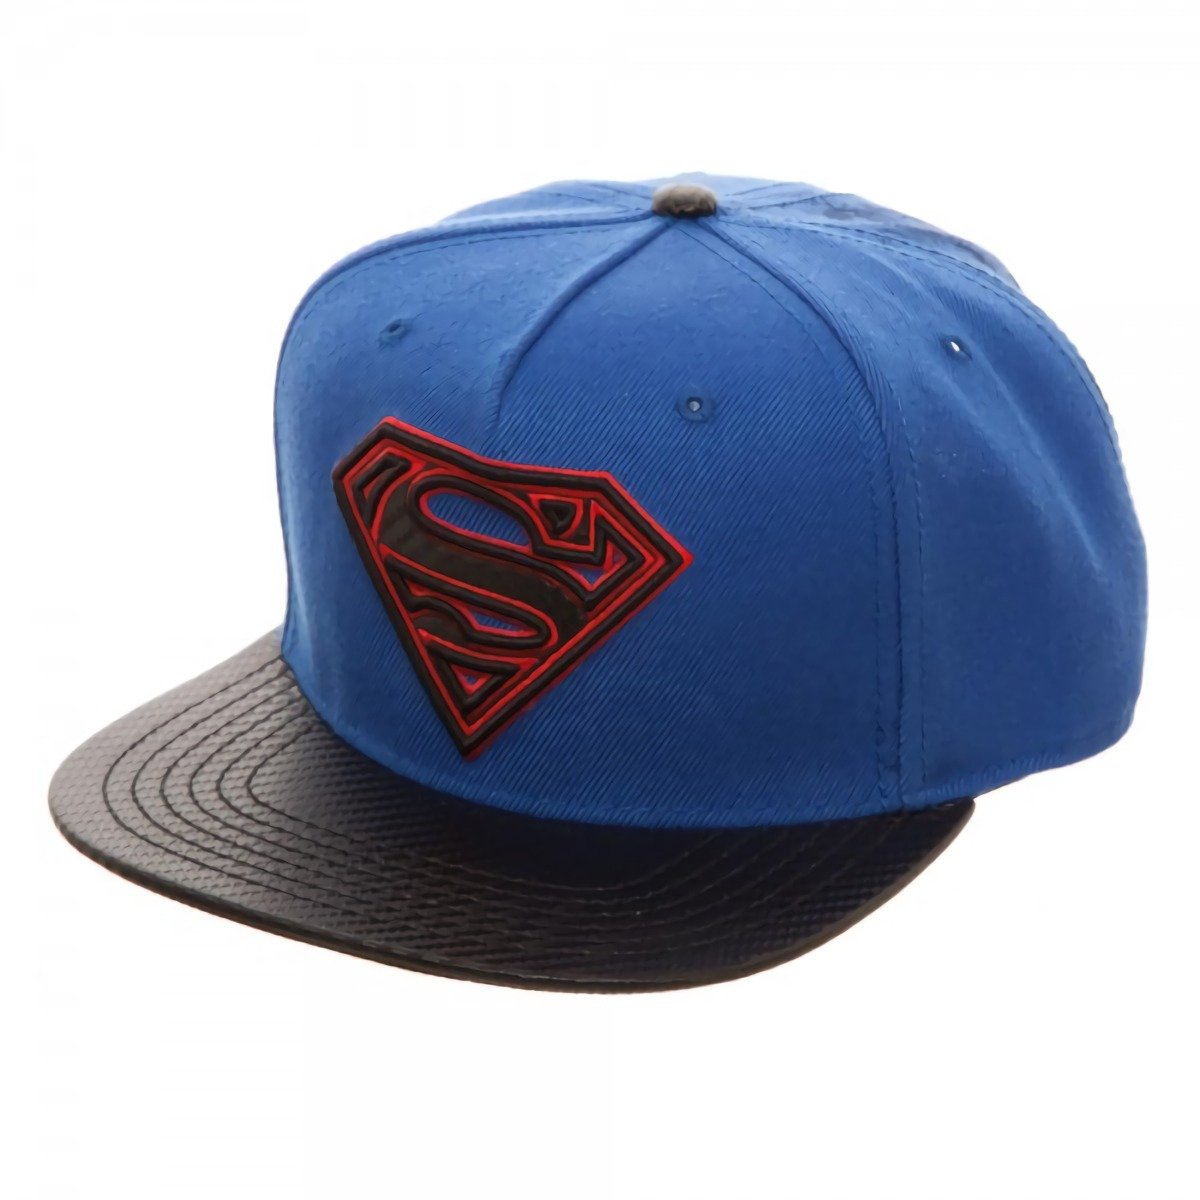 Amazon.com  Superman Carbon Fiber Snapback Baseball Hat  Clothing ae02faa9a74